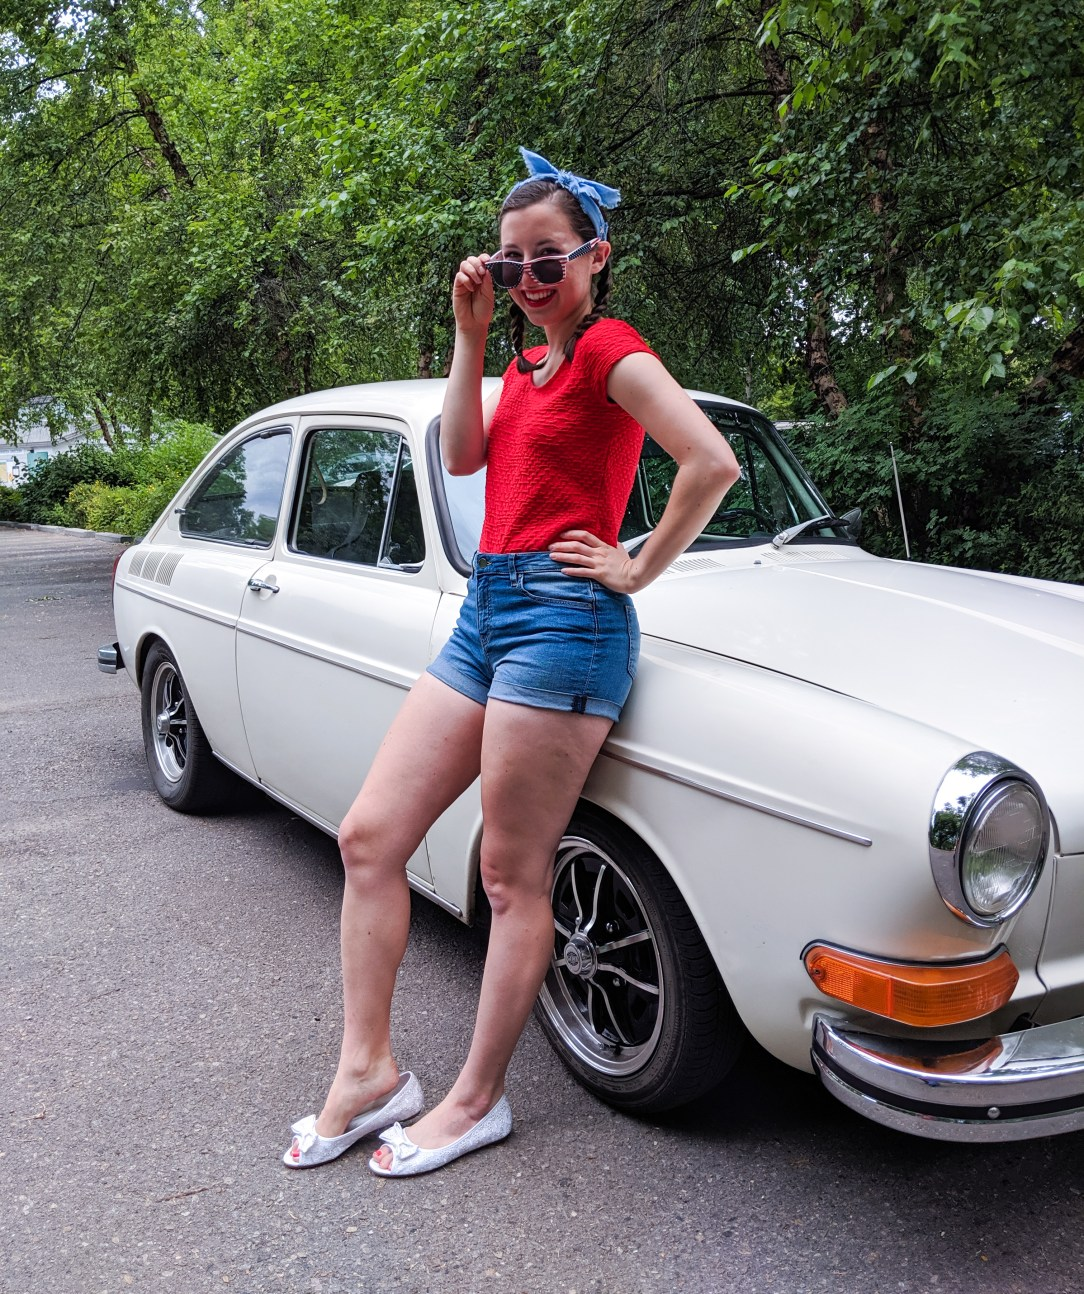 red shirt, jean shorts, old car, patriotic